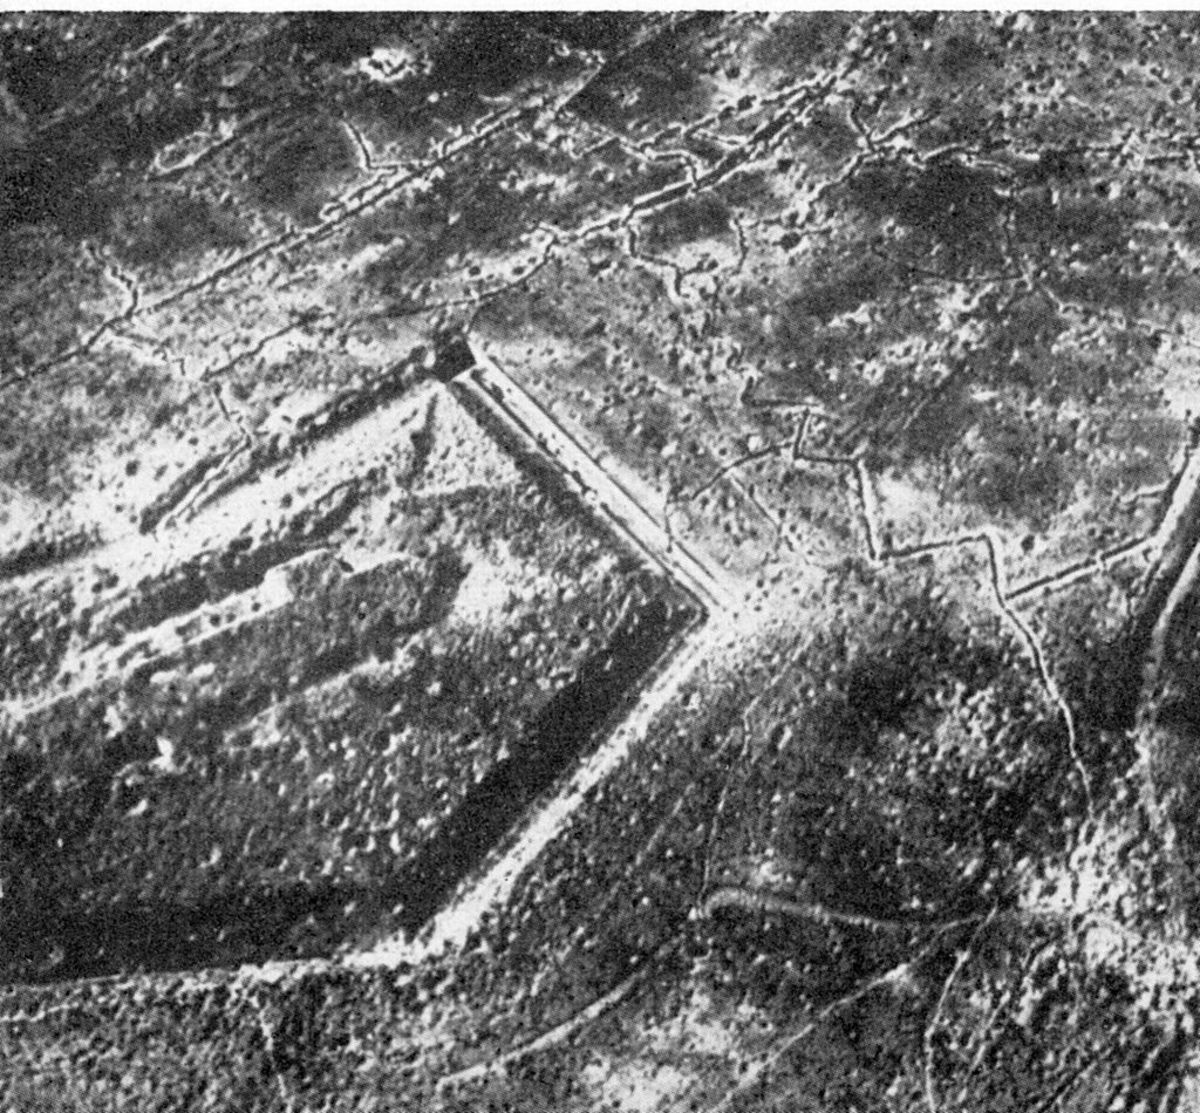 Fort Douaumont at the end of the First World War.